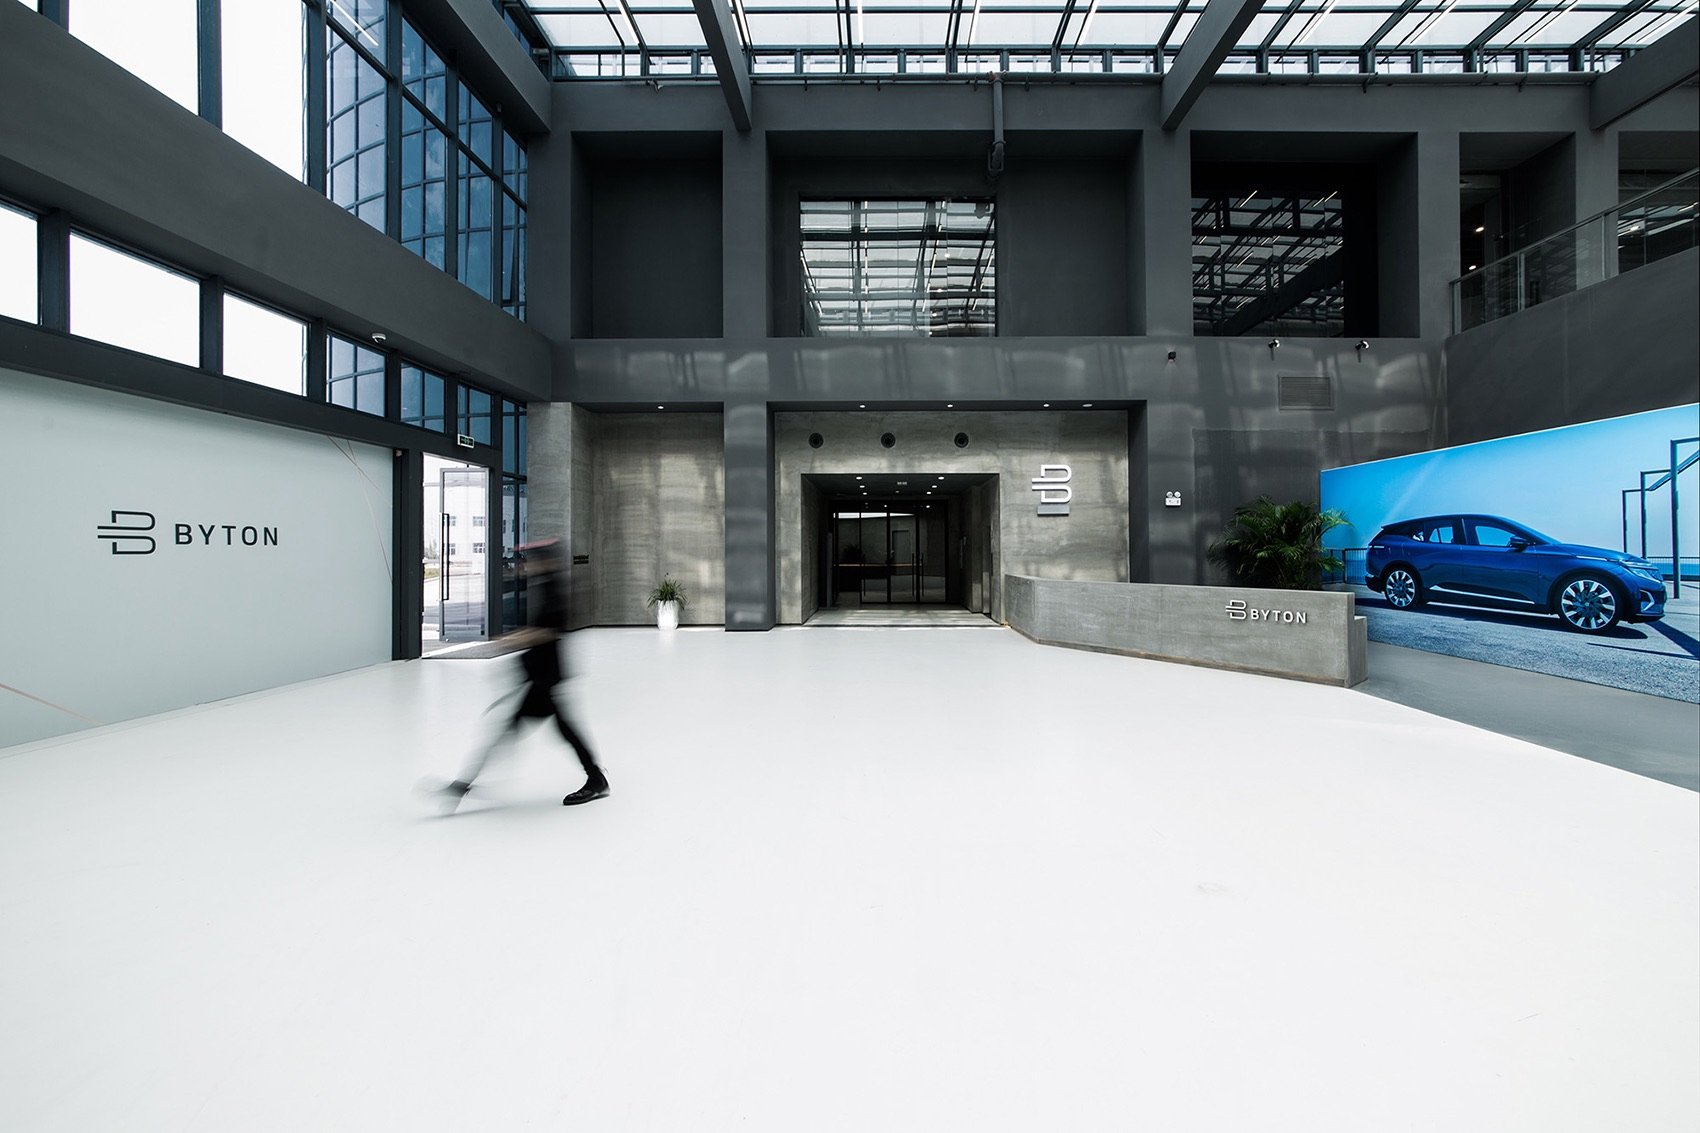 byton-nanjing-phase-two-office-1